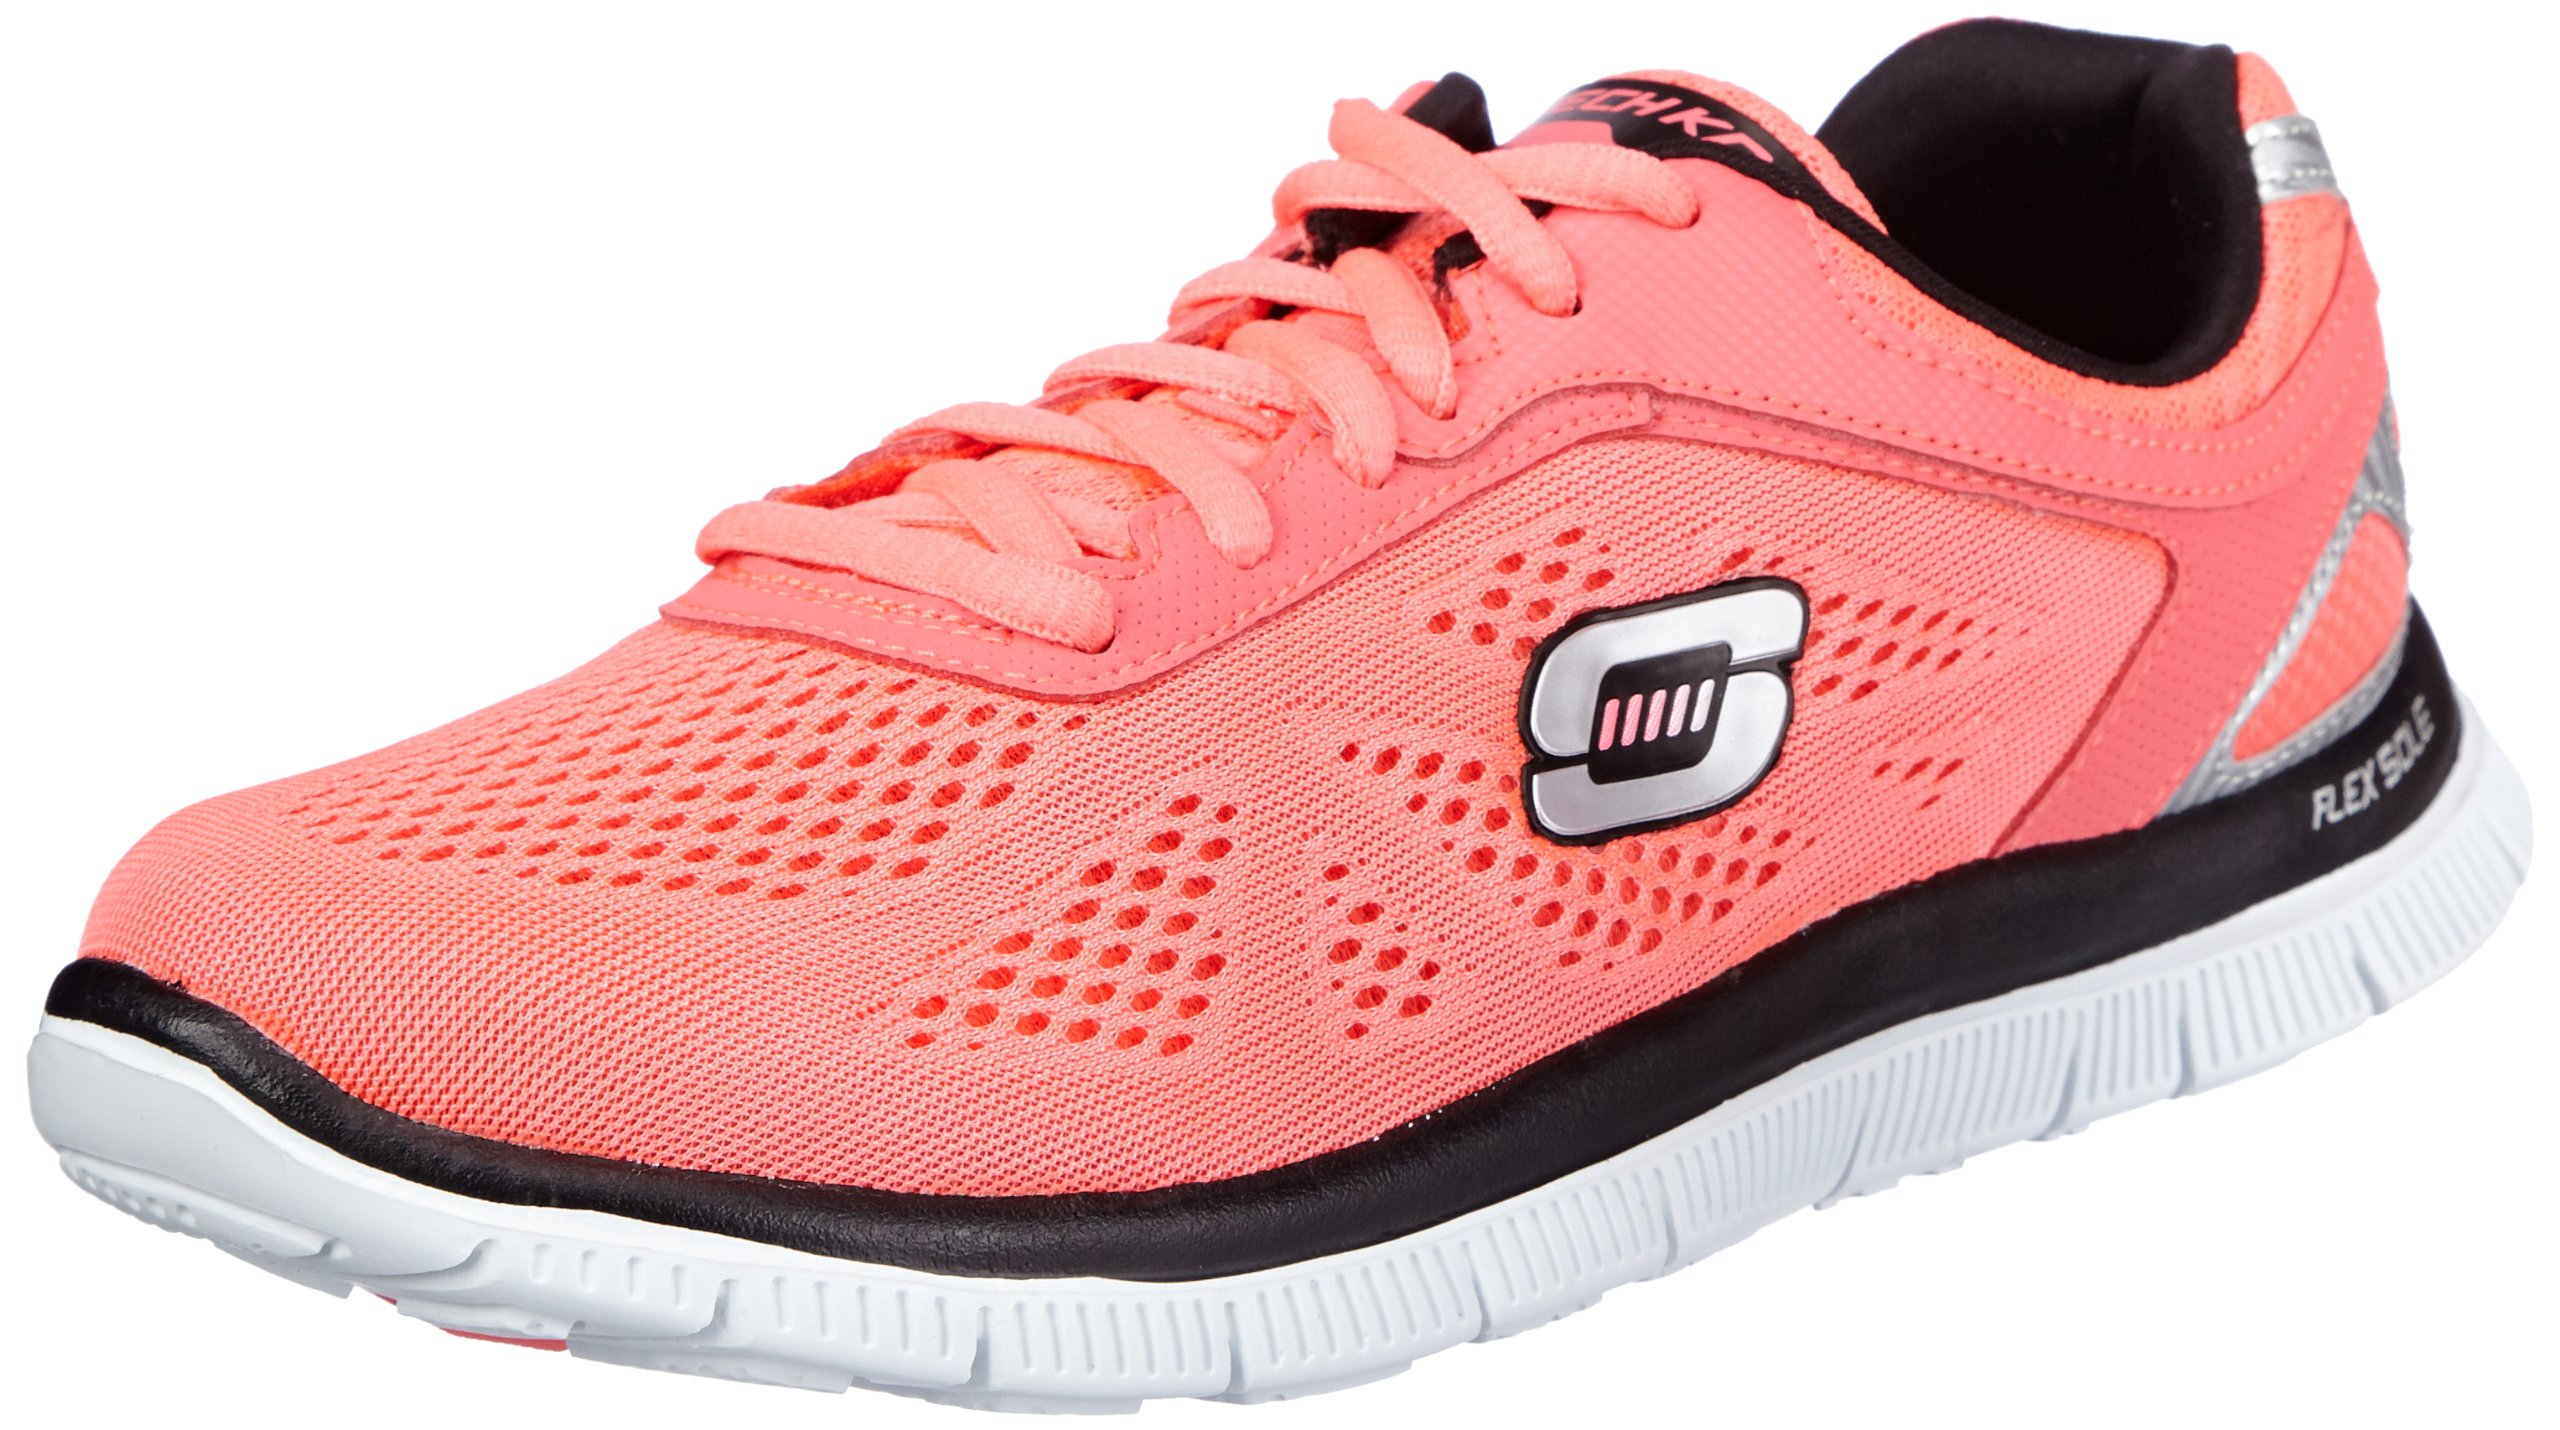 Skechers Flex Appeal Love Your Style Womens Lace Up Athletic Sneakers Hot Pink/Black 8.5